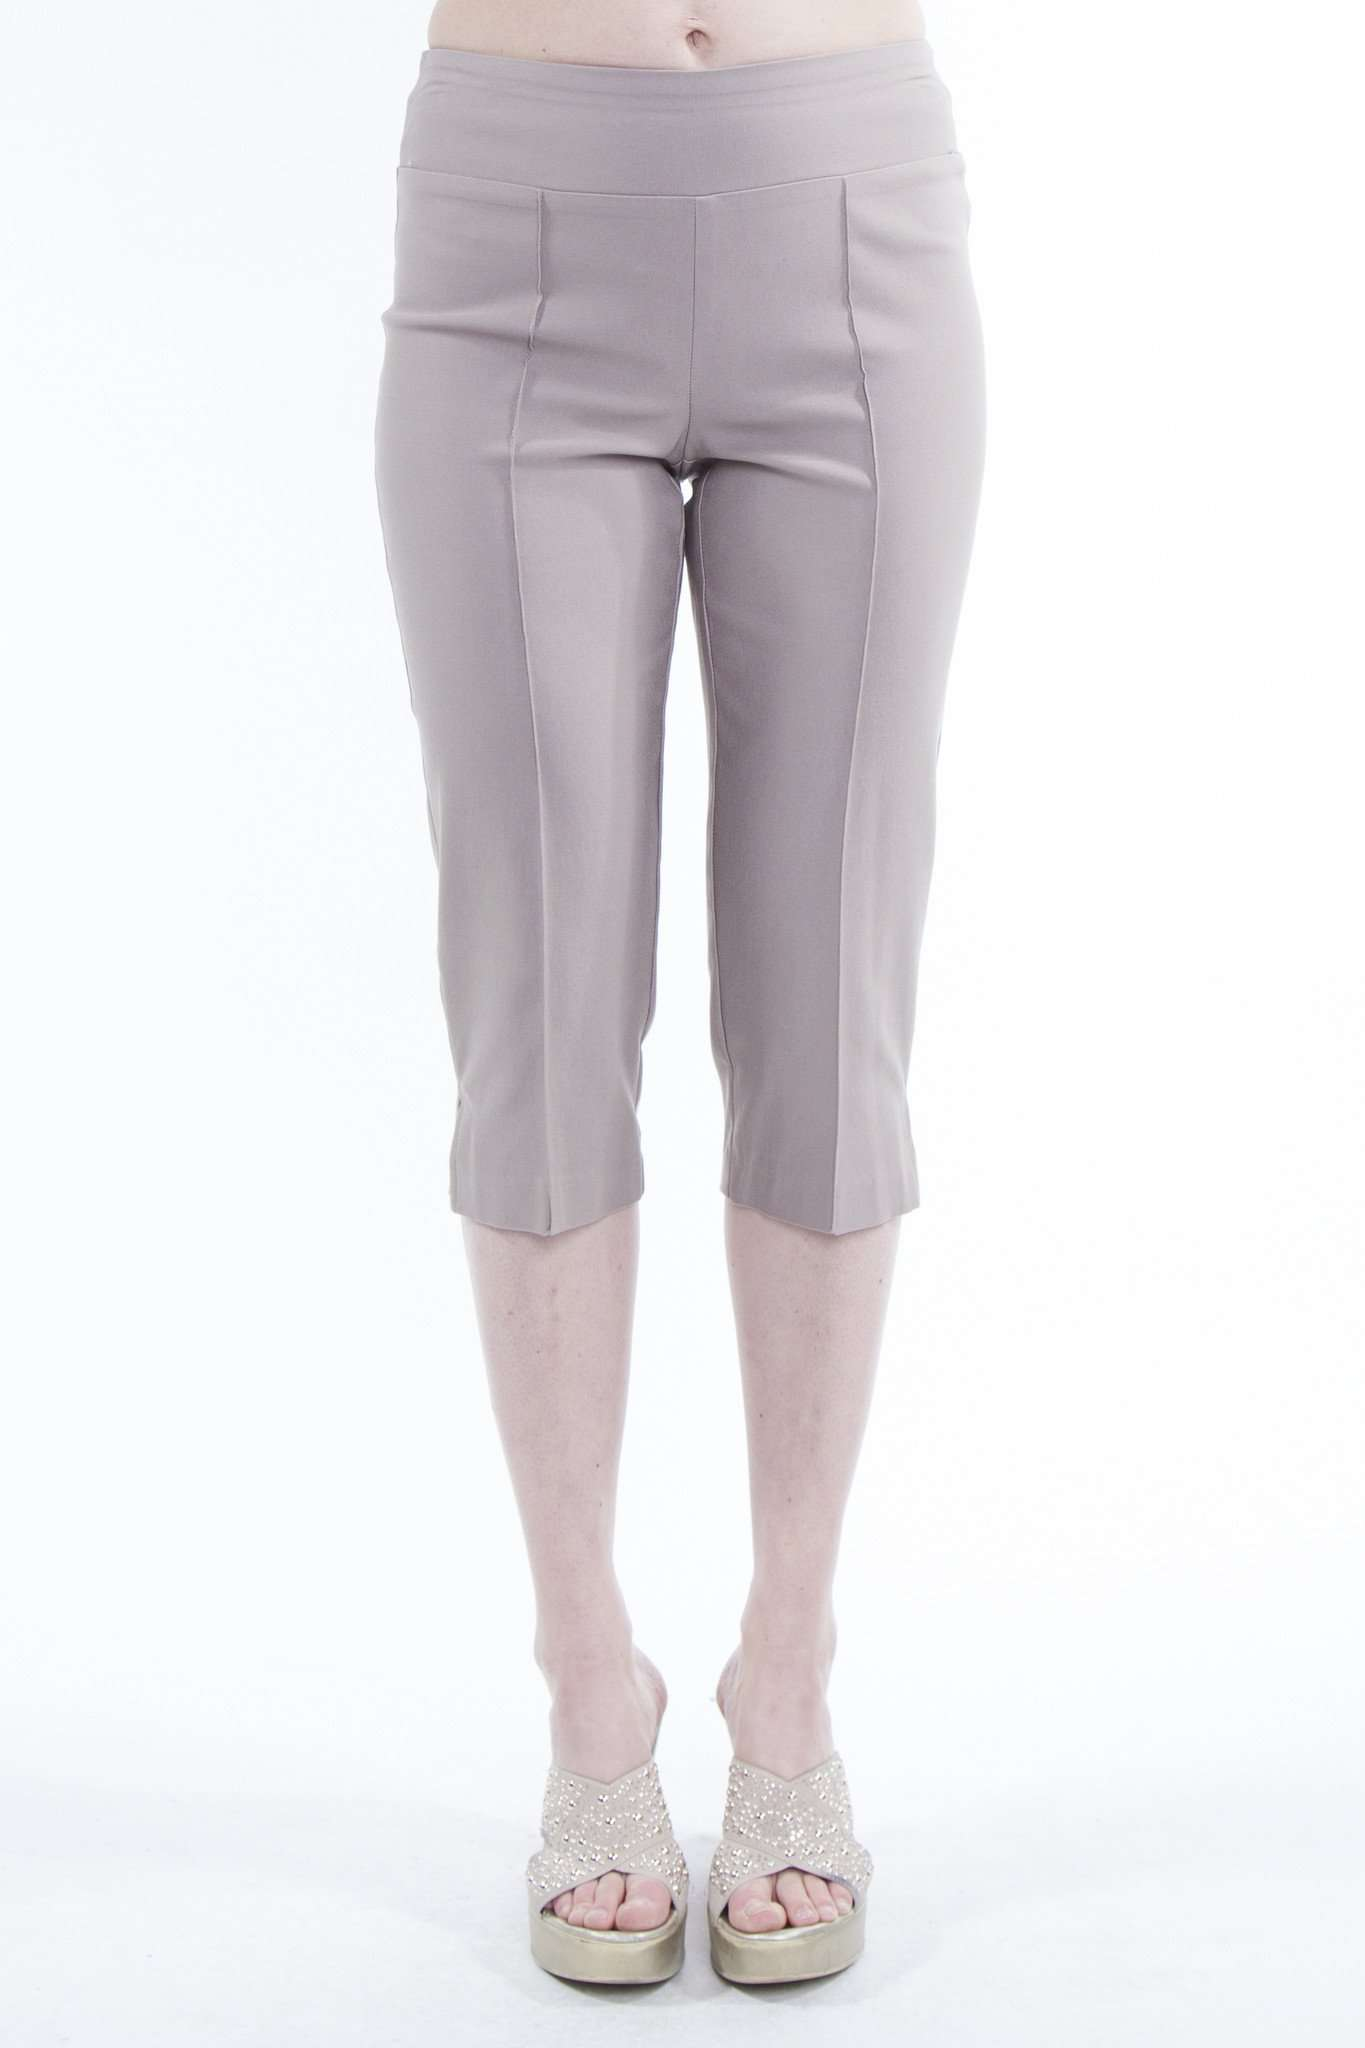 Capri Tan Comfort and Quality-Great Stretch Fabric-Slimming Effect-Made in Canada - Yvonne Marie